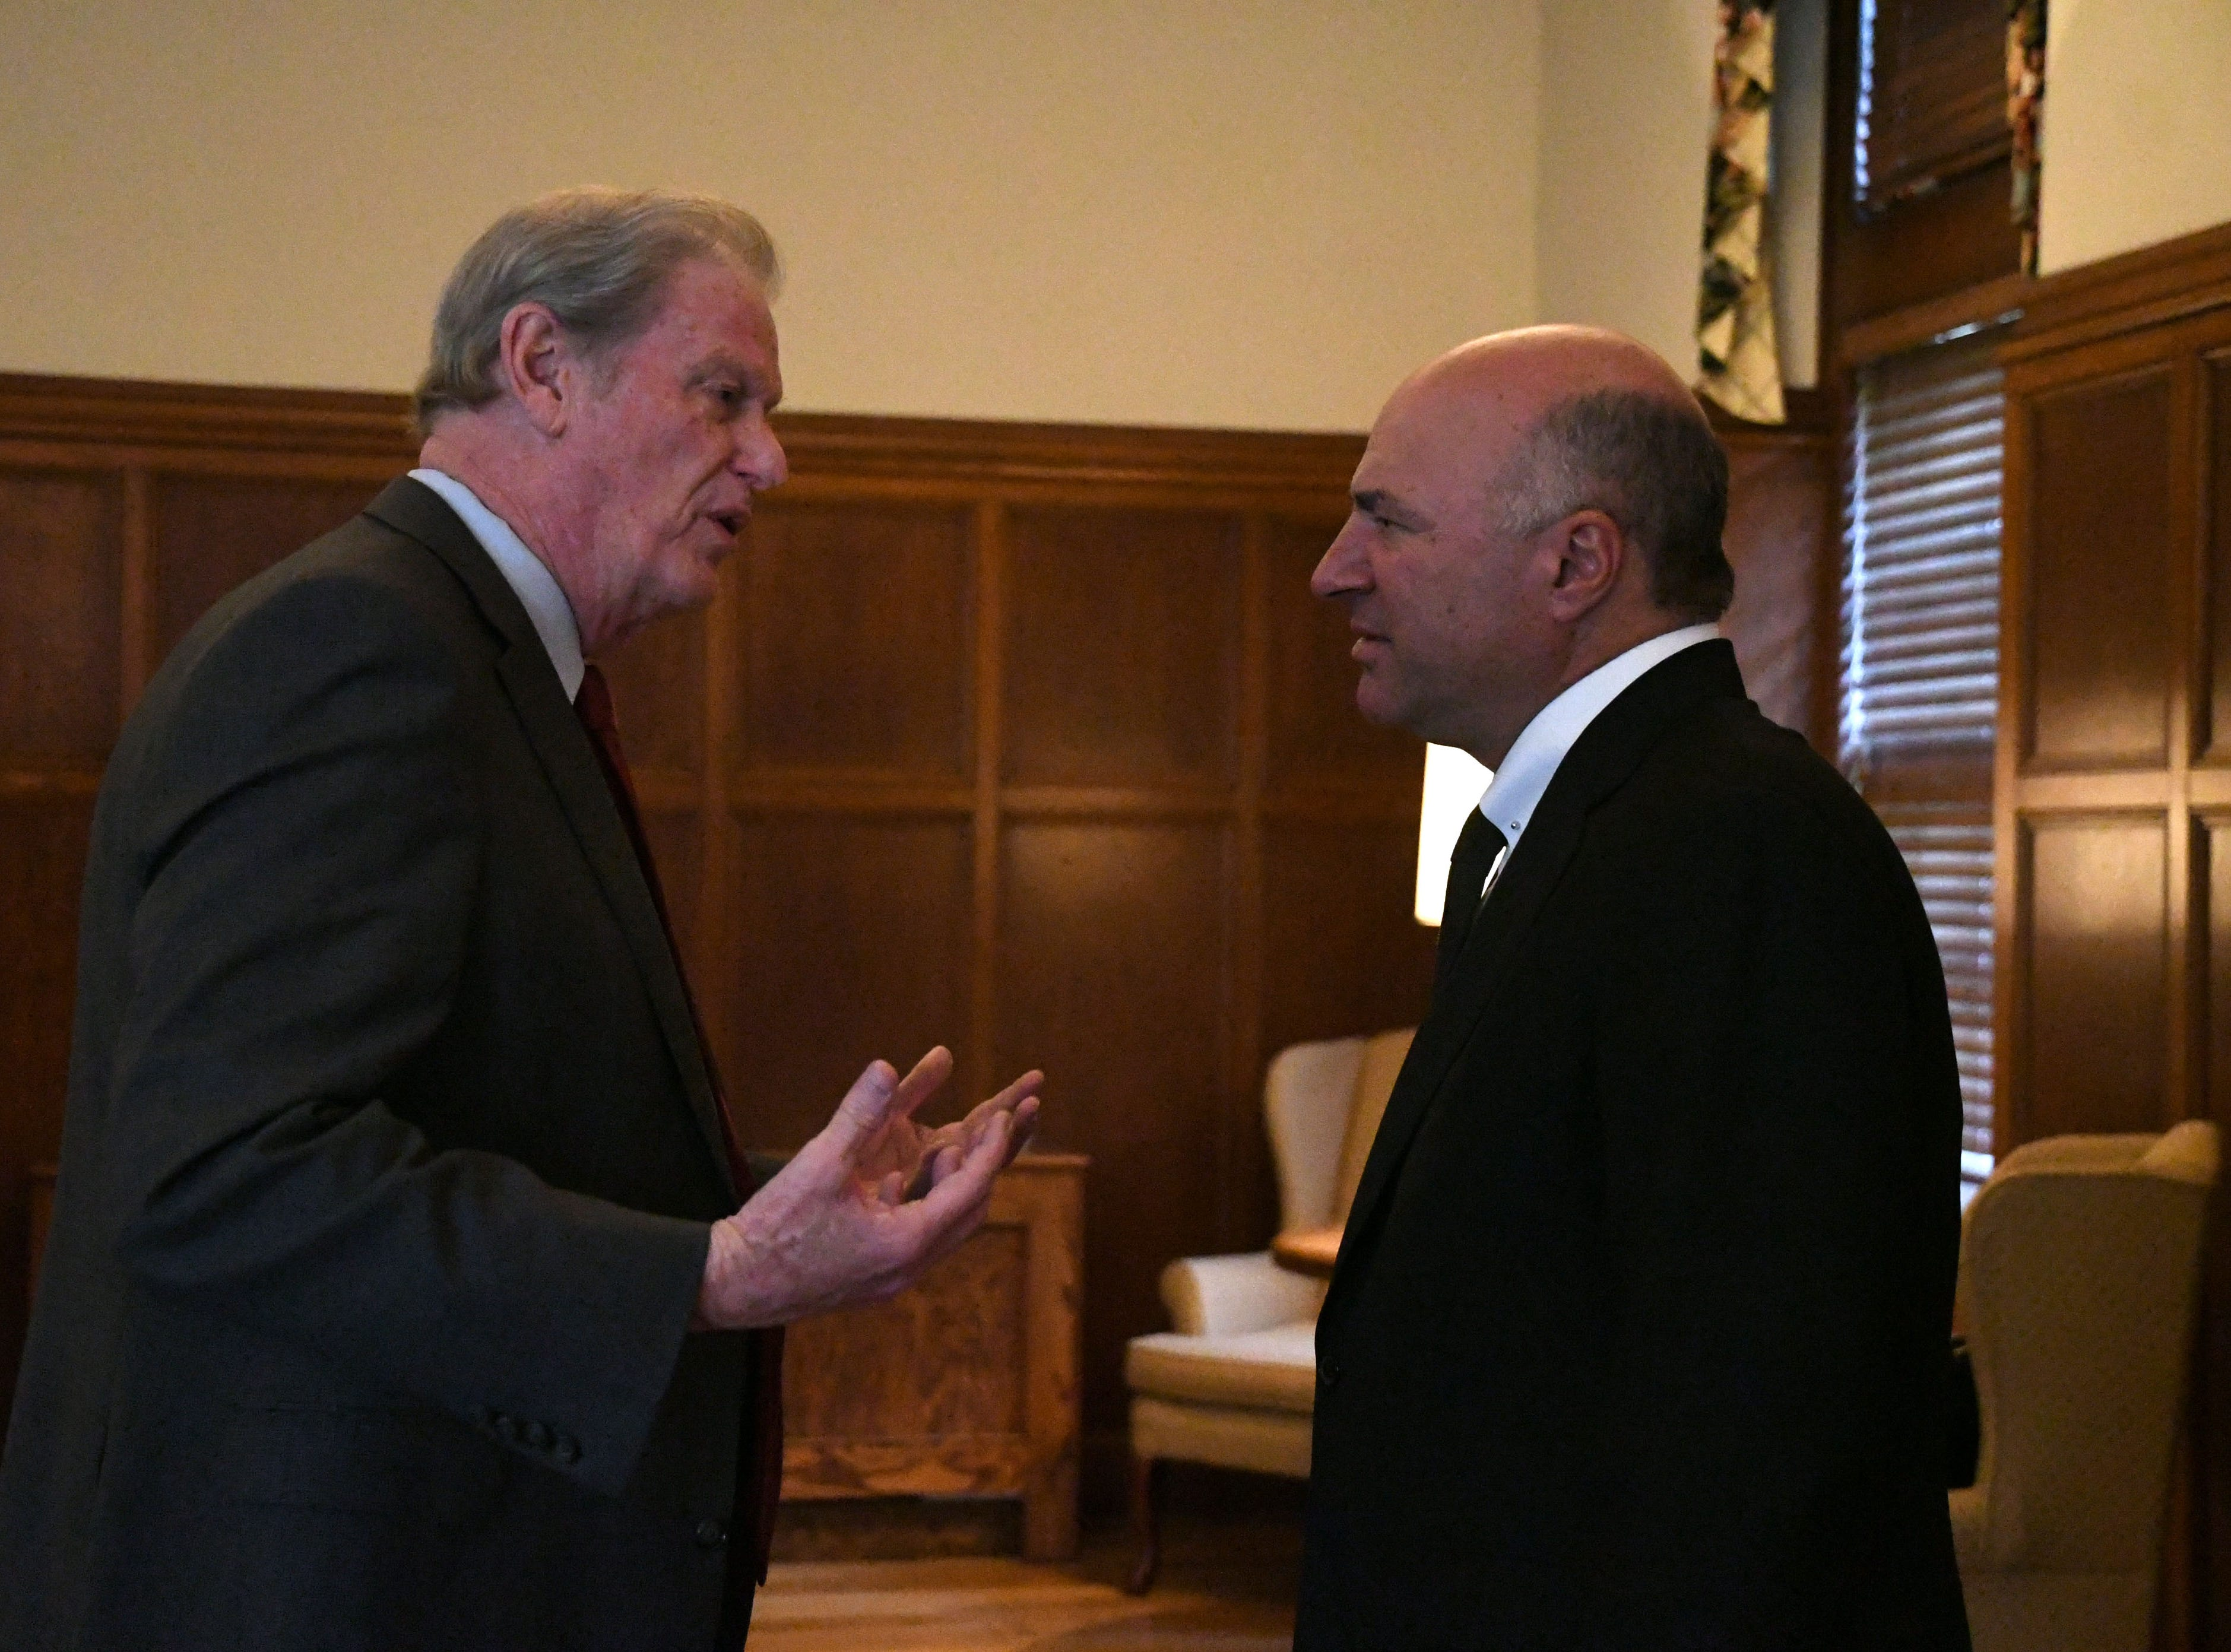 Florida State University President John Thrasher, left, speaks with serial entrepreneur and Shark Tank co-star Kevin O'Leary before O'Leary speaks at the Power Forward business event at Ruby Diamond Hall, Wednesday Feb. 6, 2019.